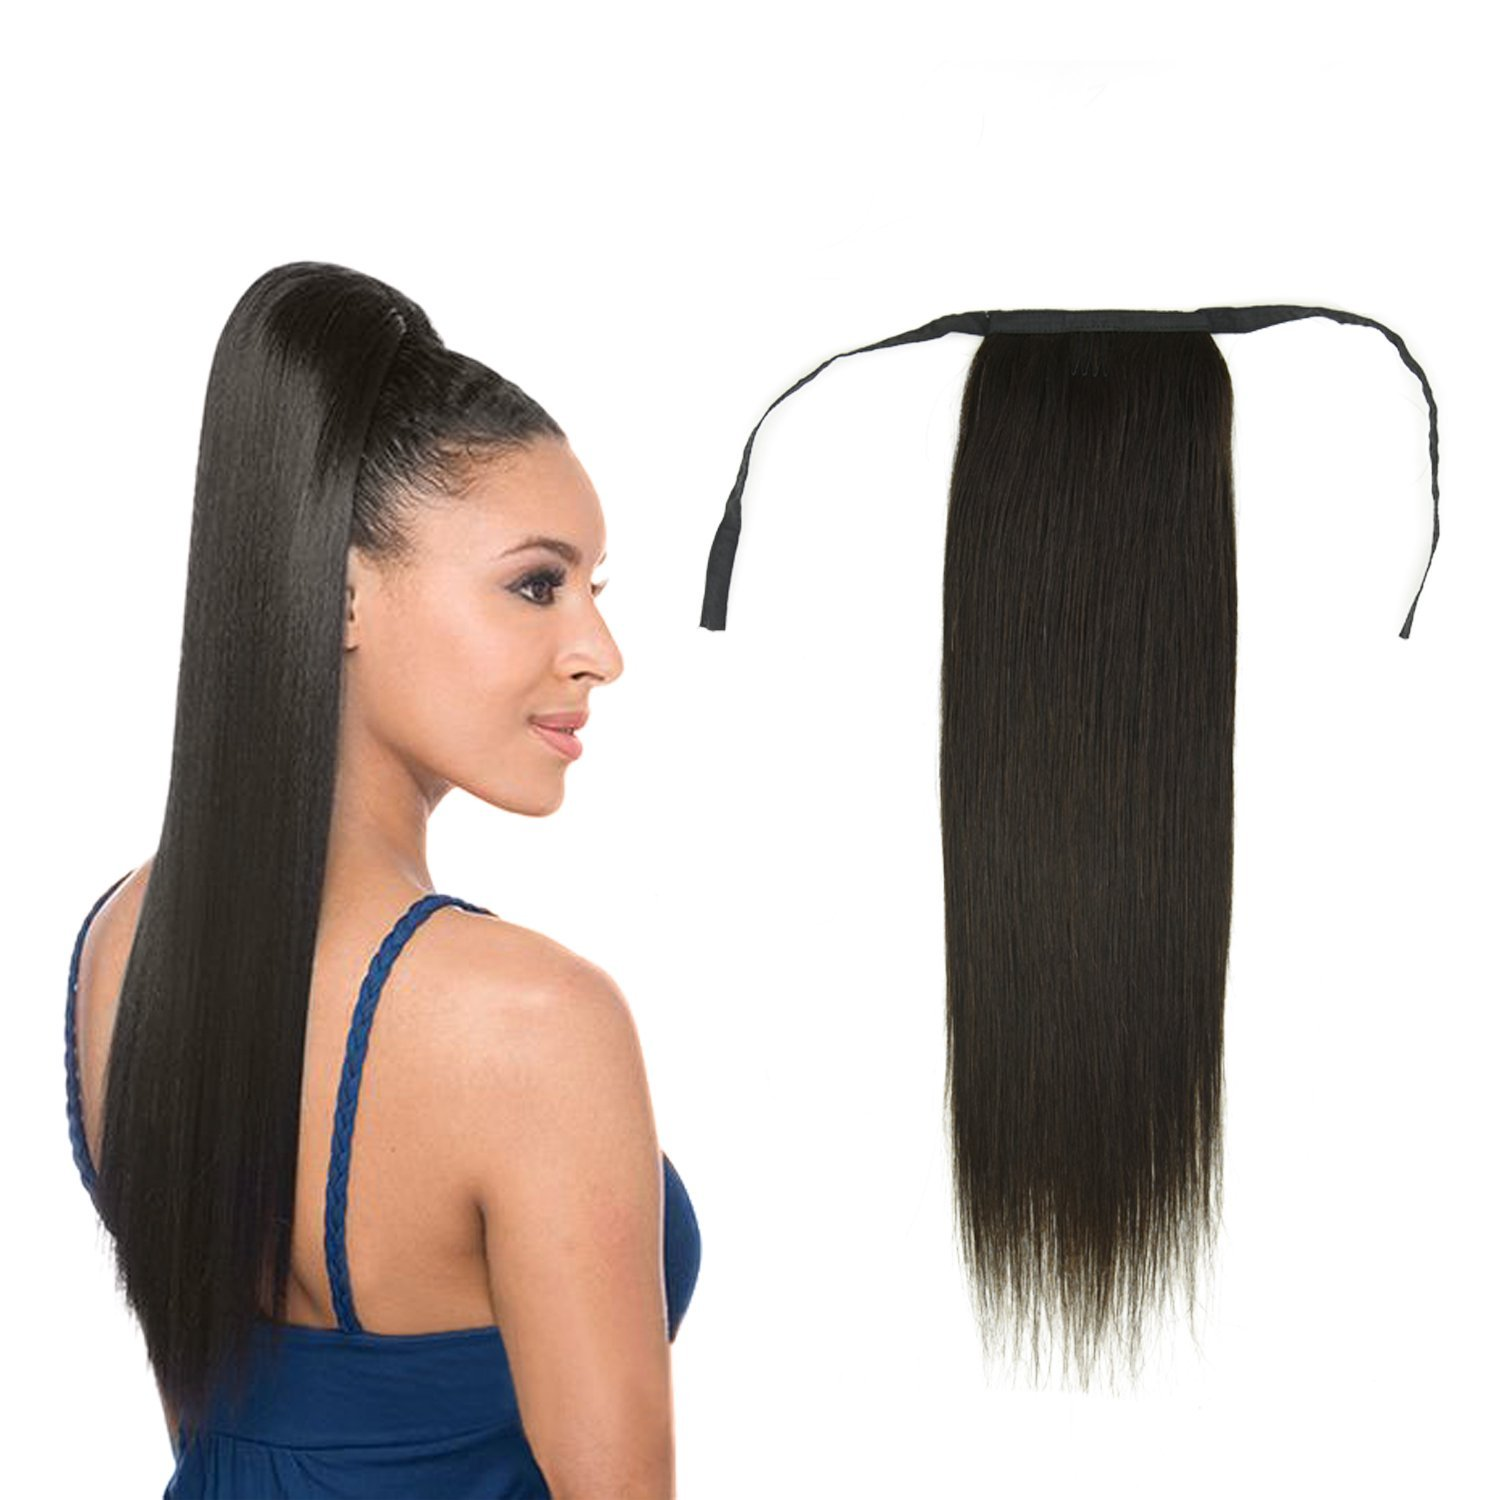 Cheap Ponytail Real Hair Extensions Find Ponytail Real Hair